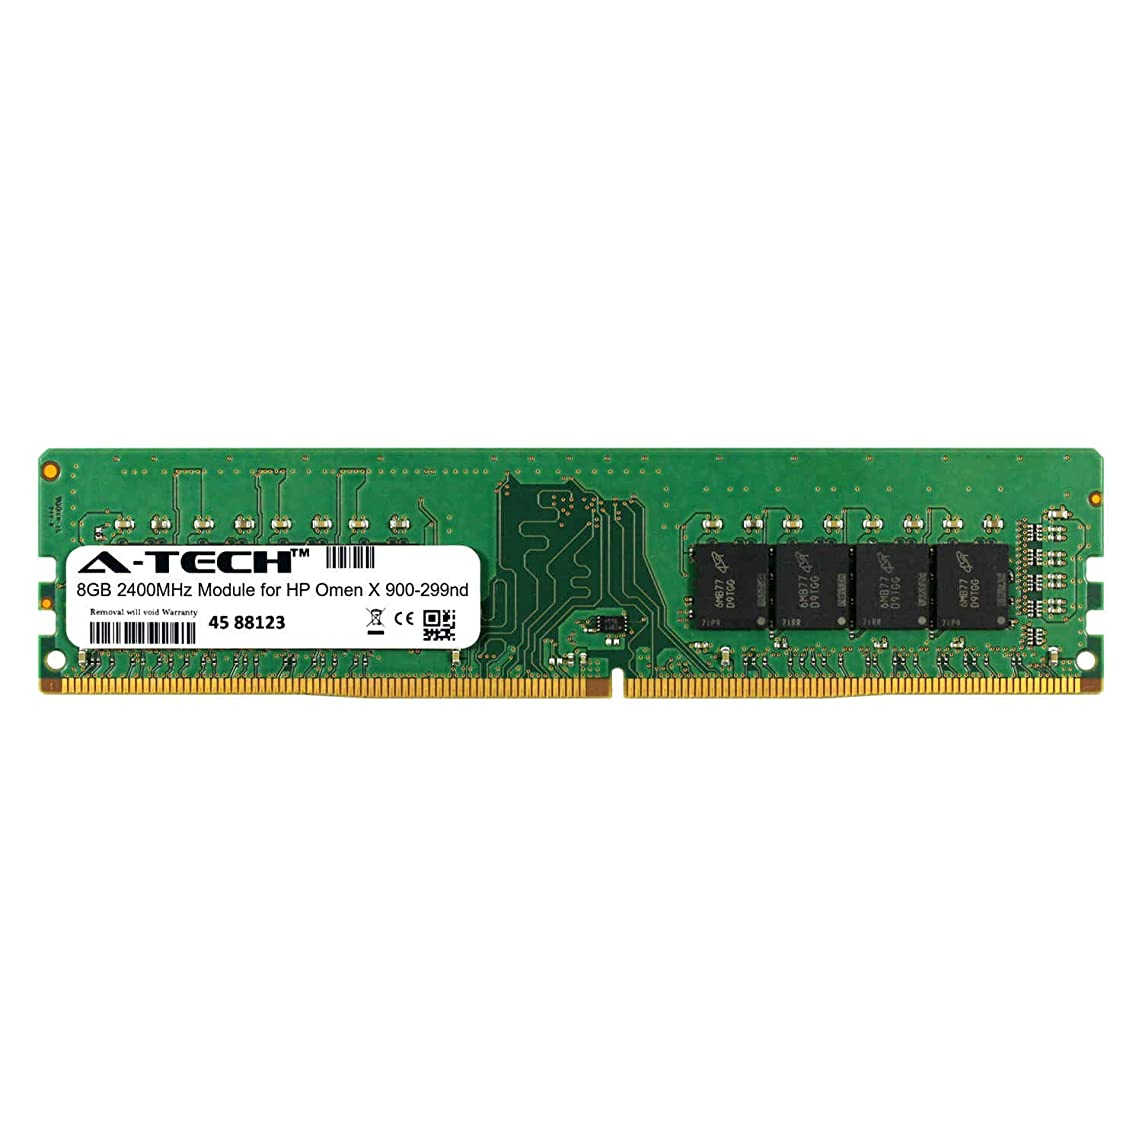 A-Tech 8GB Module for HP Omen X 900-299nd Desktop & Workstation Motherboard Compatible DDR4 2400Mhz Memory Ram (ATMS283206A25820X1)